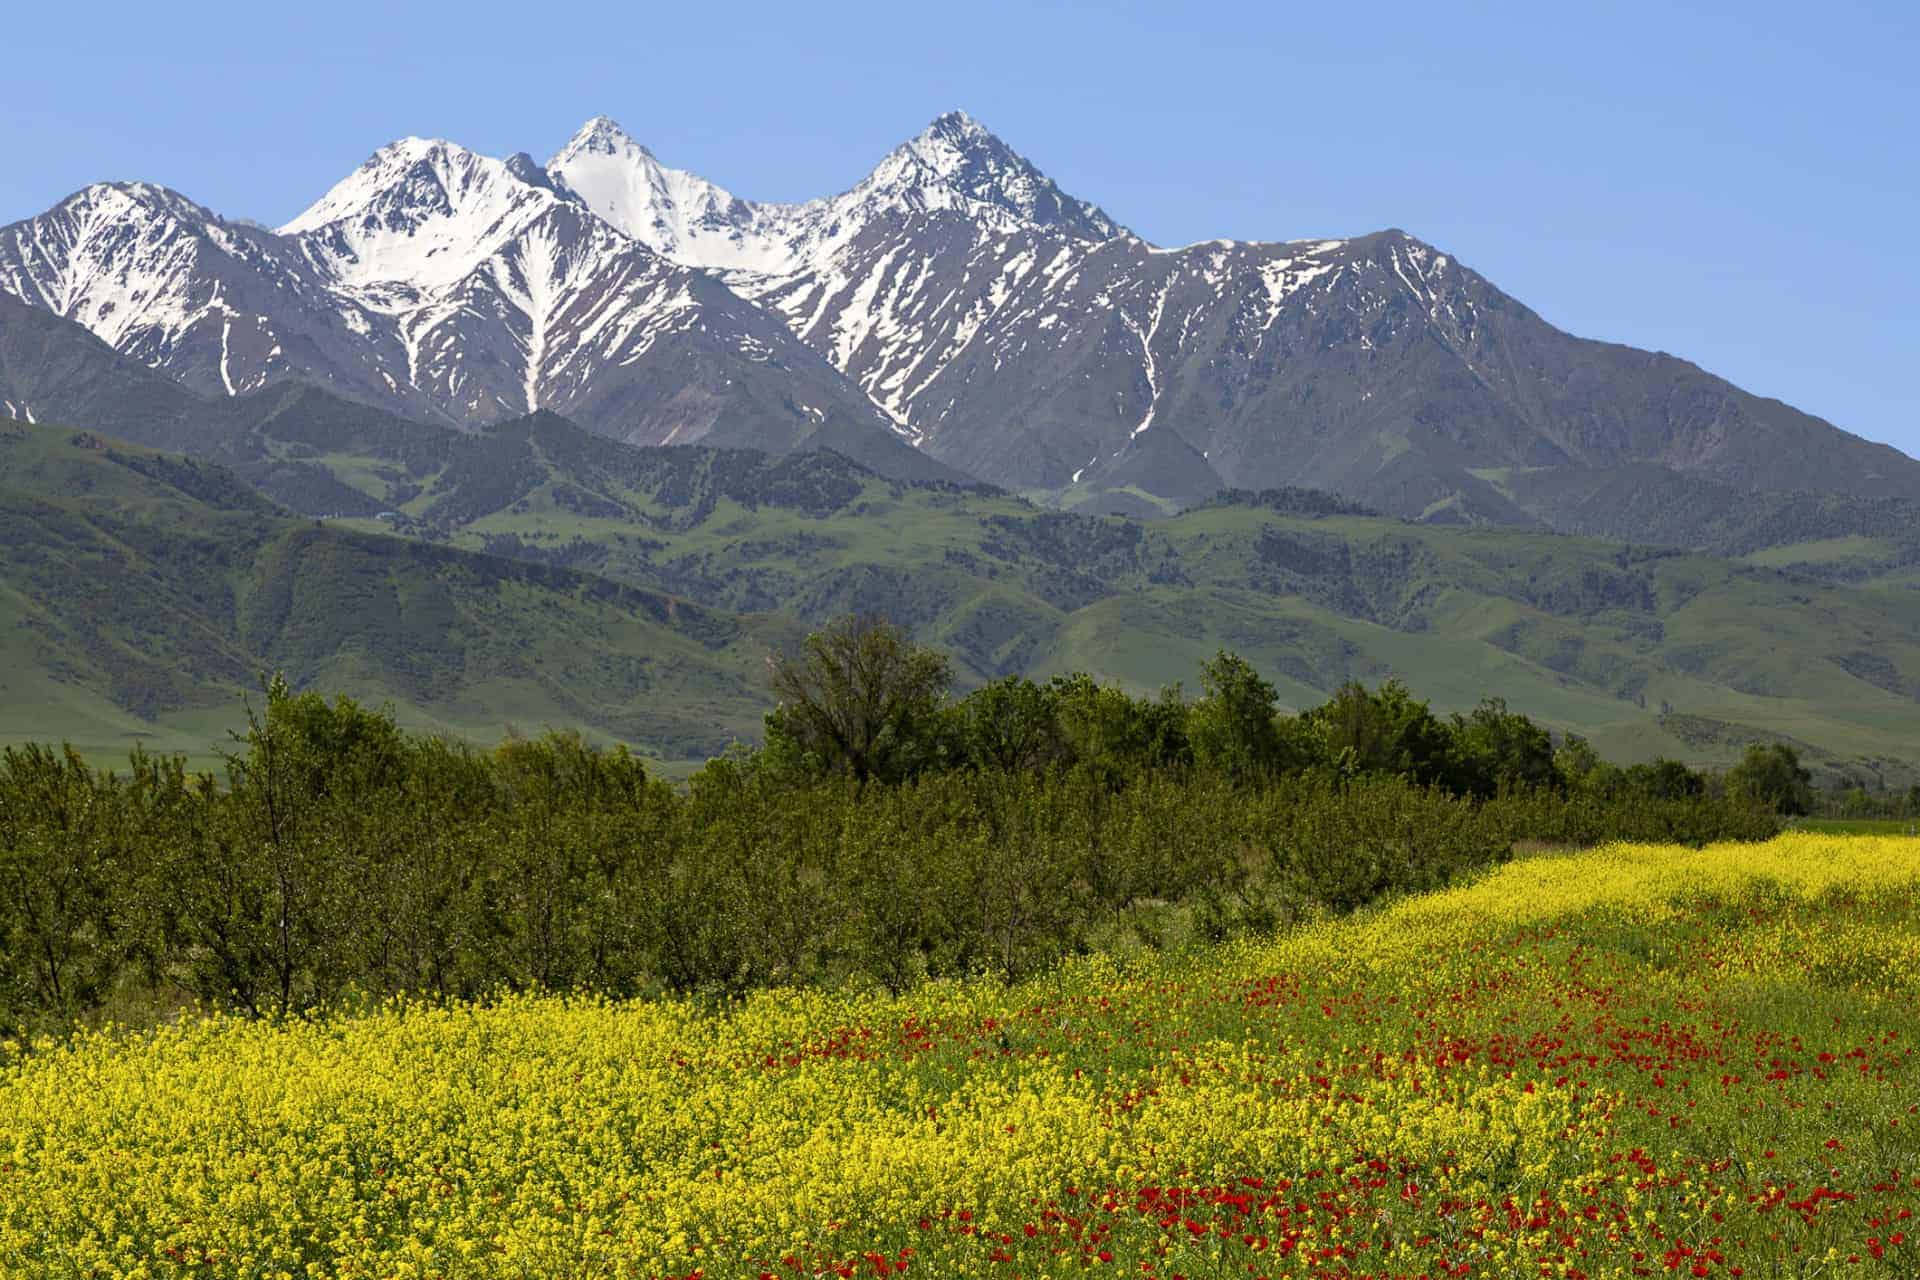 Spring flowers with a view of the Tien Shan Mountains Kyrgyzstan